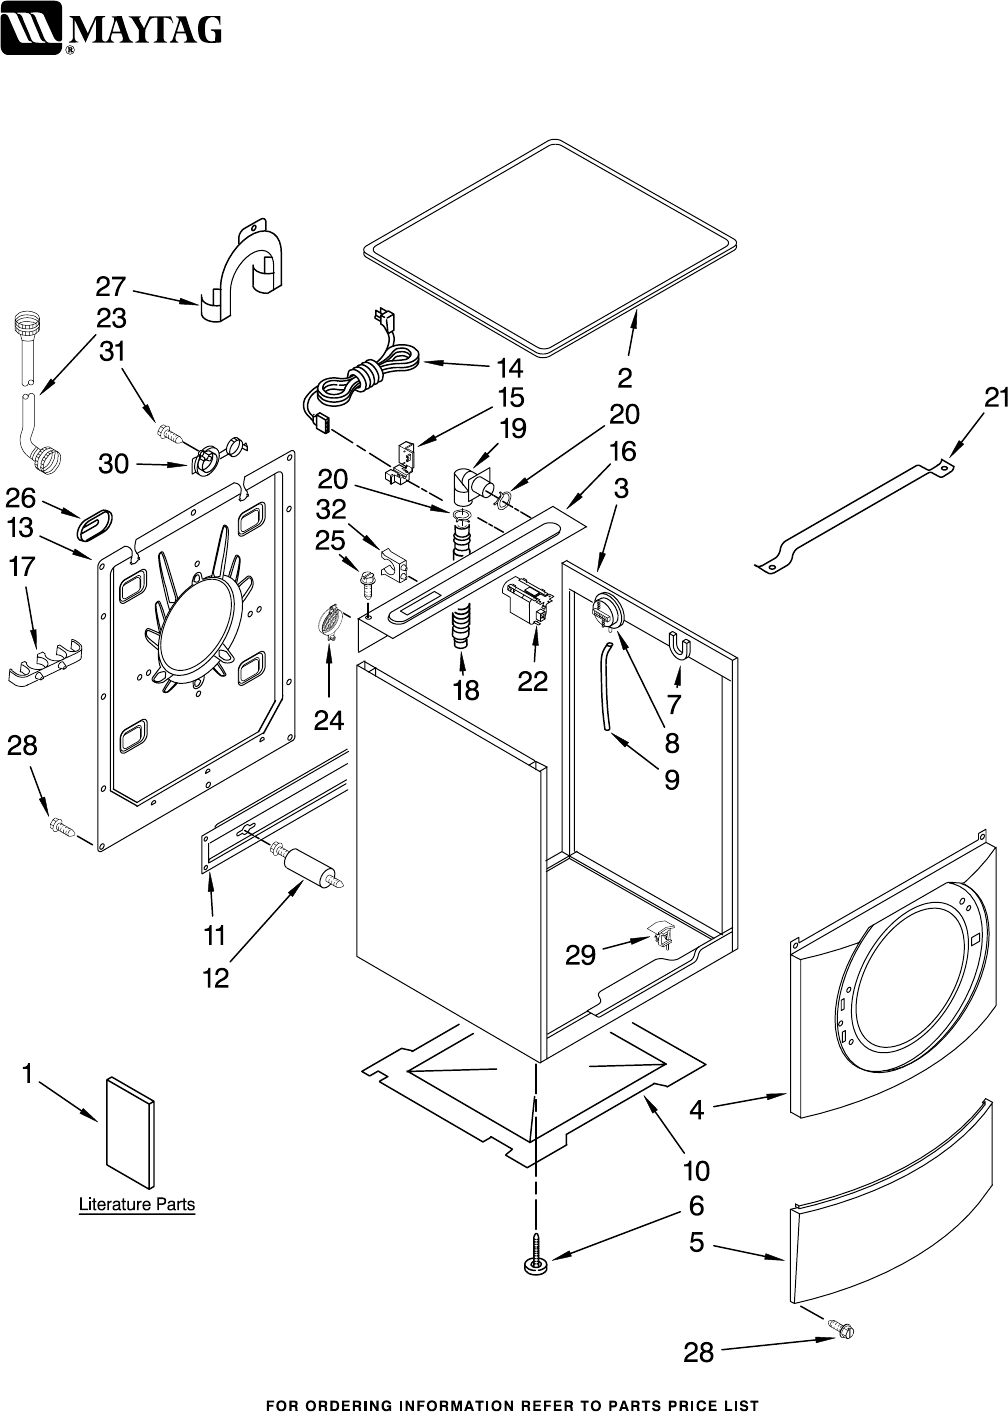 maytag washer mfw9700sq1 user guide manualsonline com rh kitchen manualsonline com maytag washer mfw9700sq1 manual maytag washer mfw9700sq1 manual